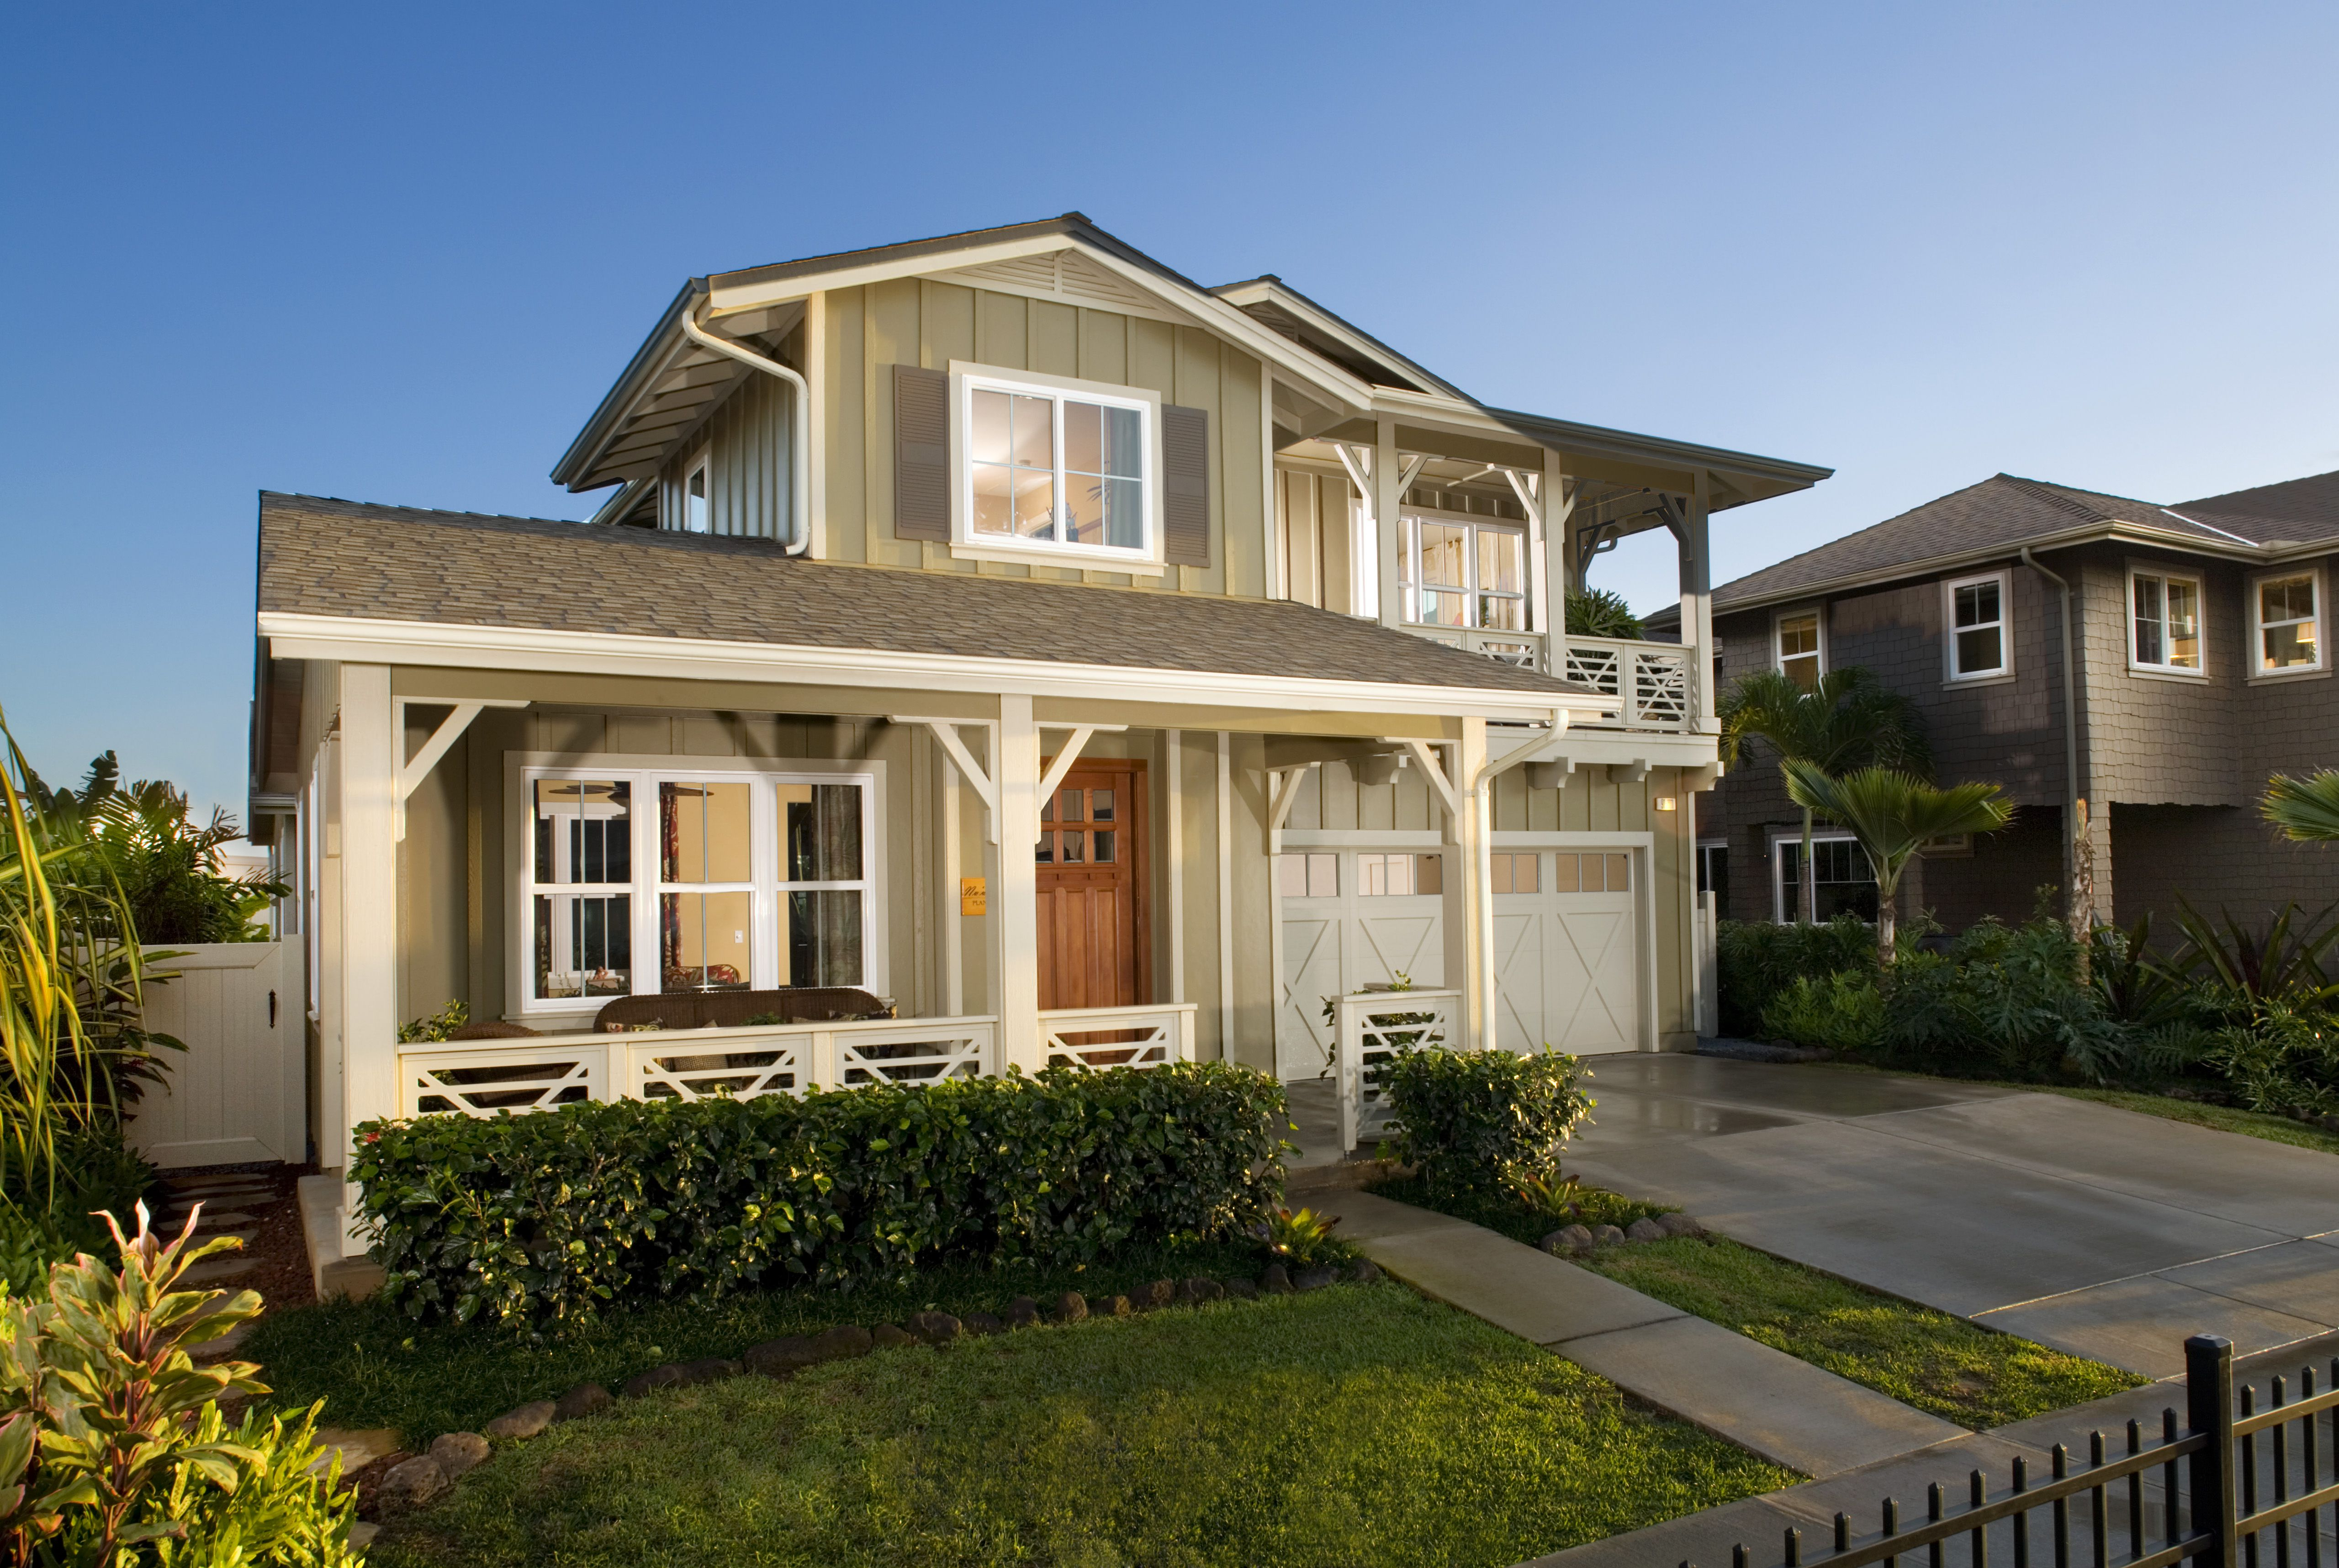 ExpertlyCrafted Paint Schemes For Your Home Exterior